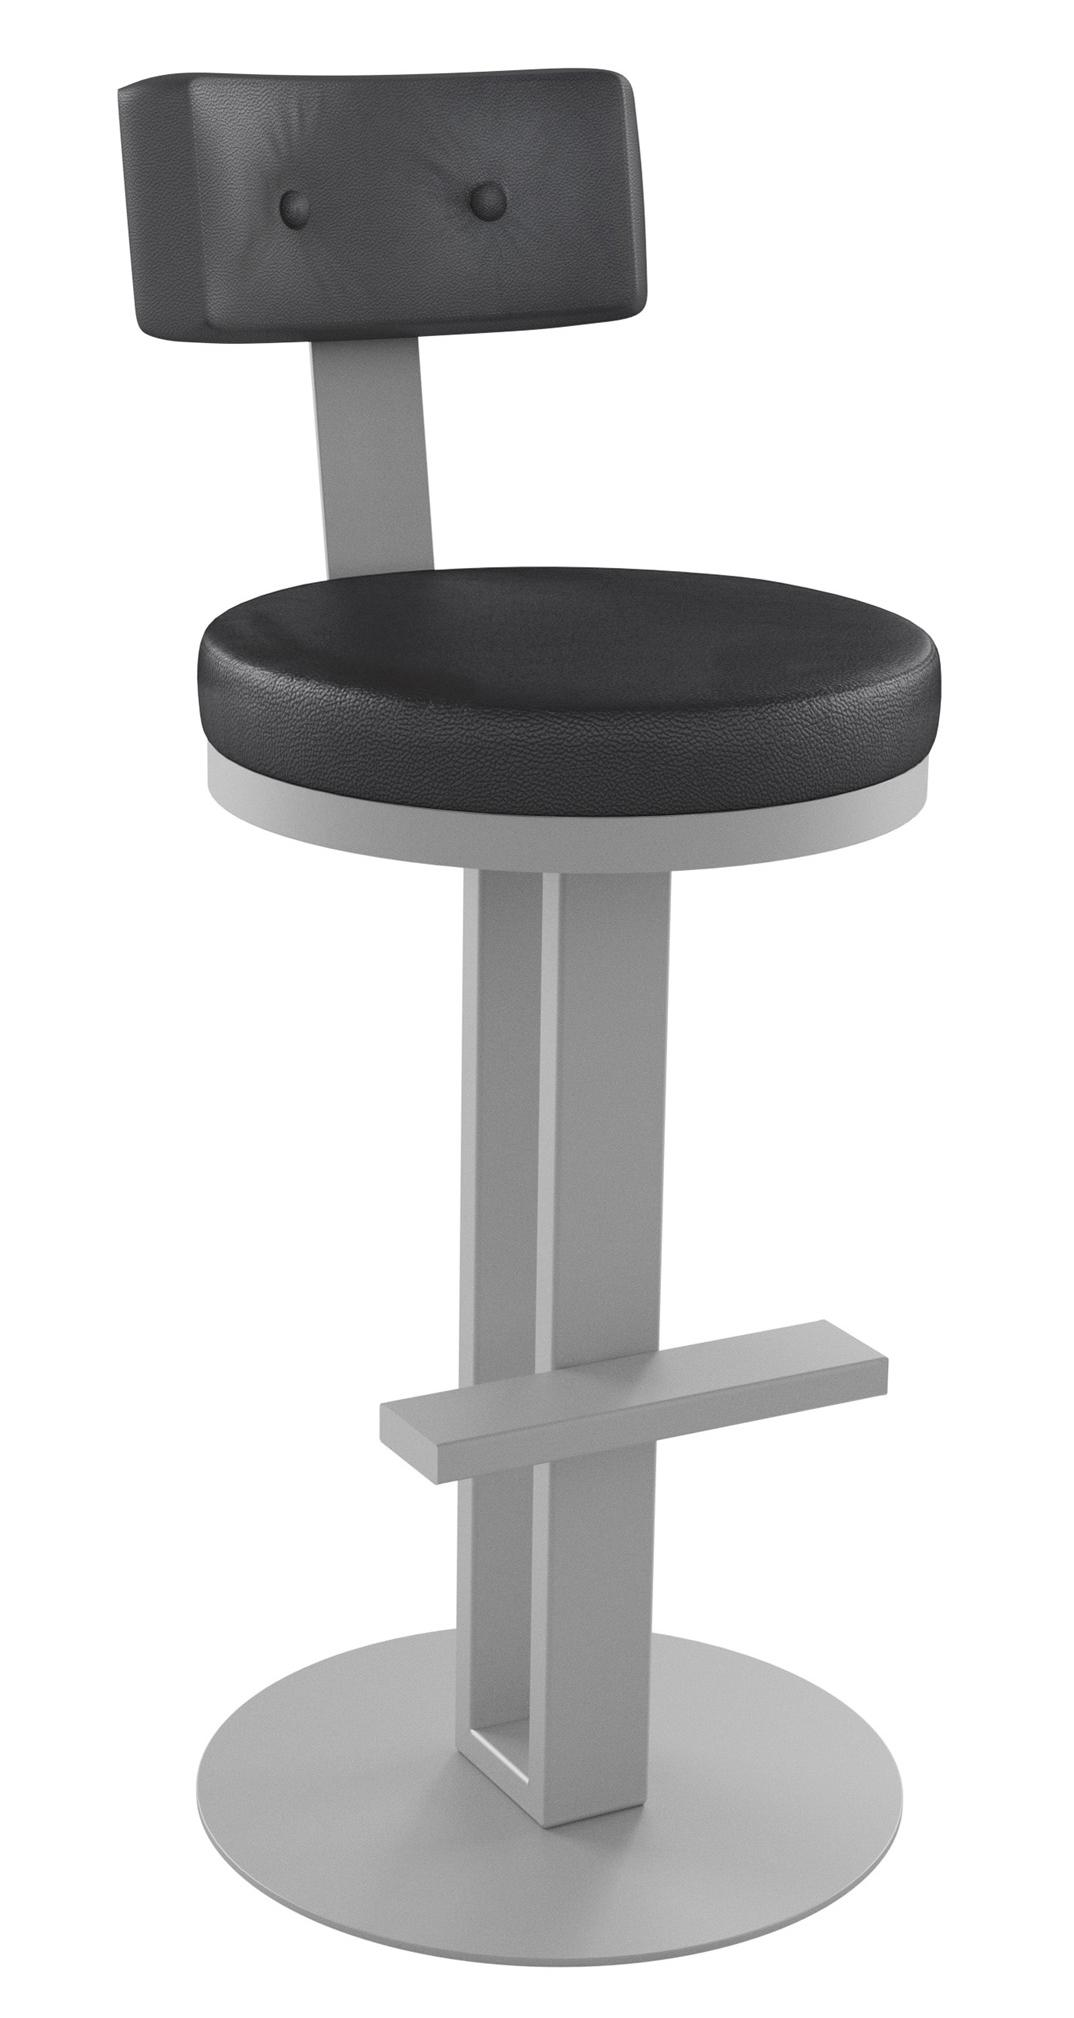 Amisco Stools 41495 26 26 Quot Counter Height Empire Swivel